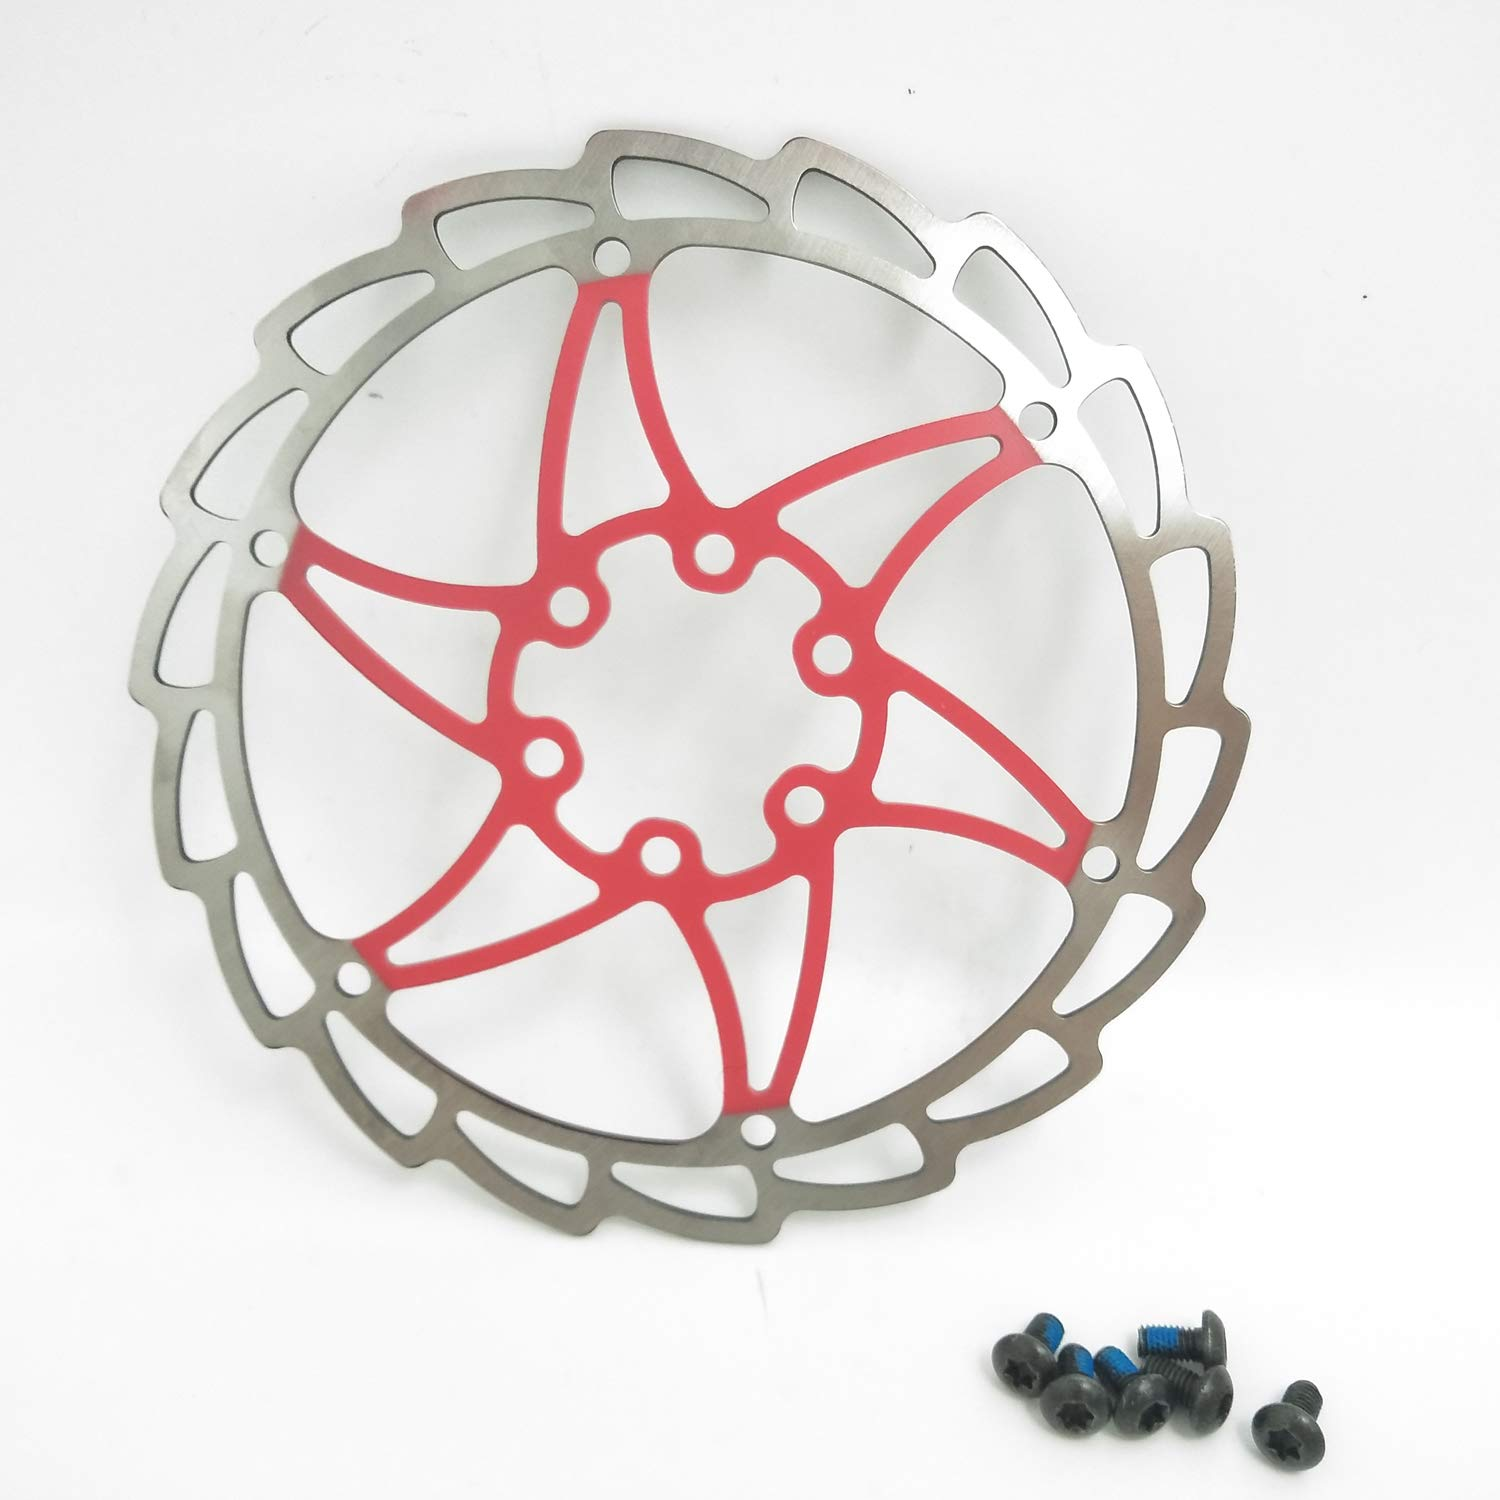 CDHPOWER 160mm Disc Brake Rotor with 6 Bolts Stainless Steel Bicycle Rotors Fit for Road Bike Mountain Bike MTB Stainless Steel, 1pc BMX